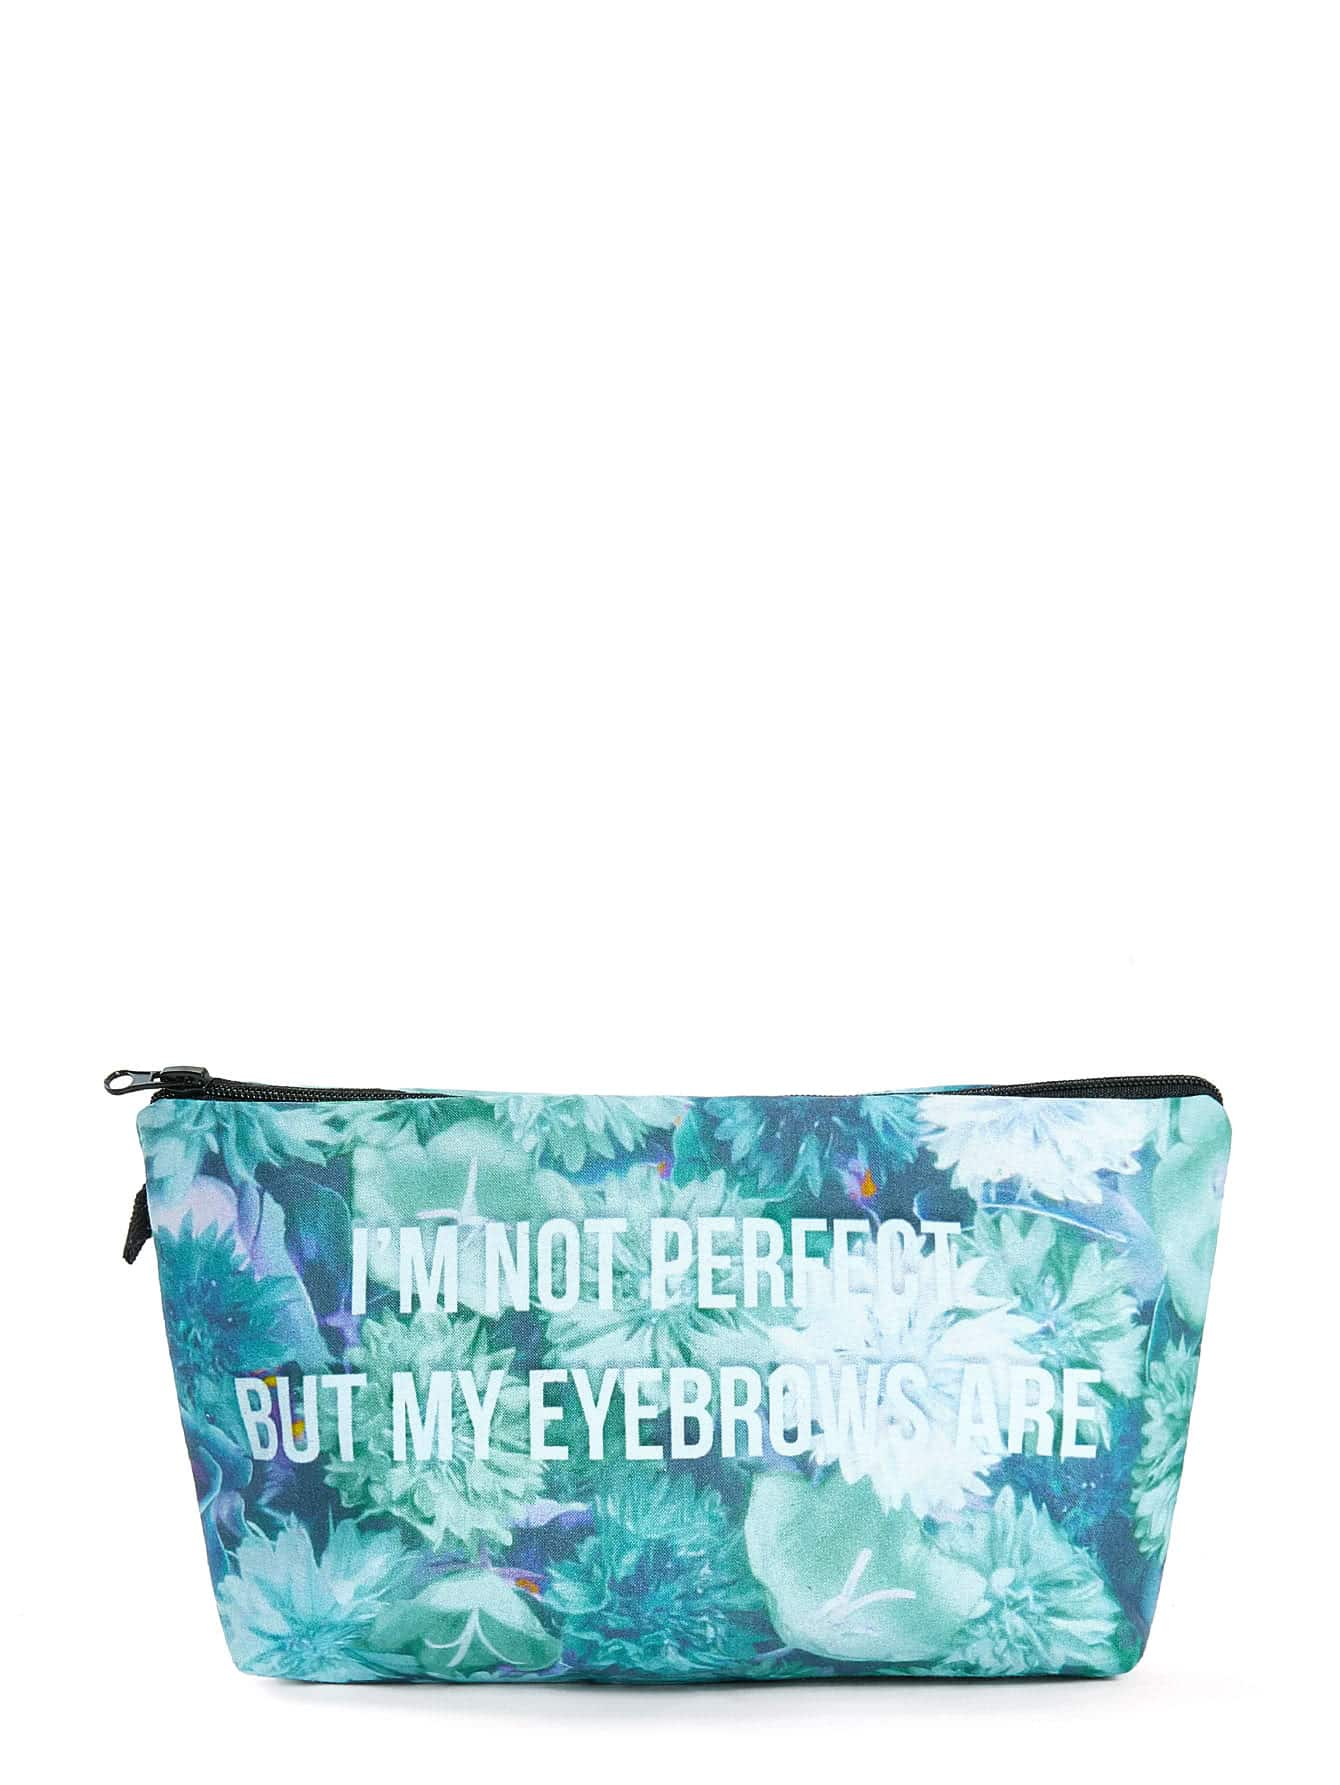 Slogan Print Zipper Pouch